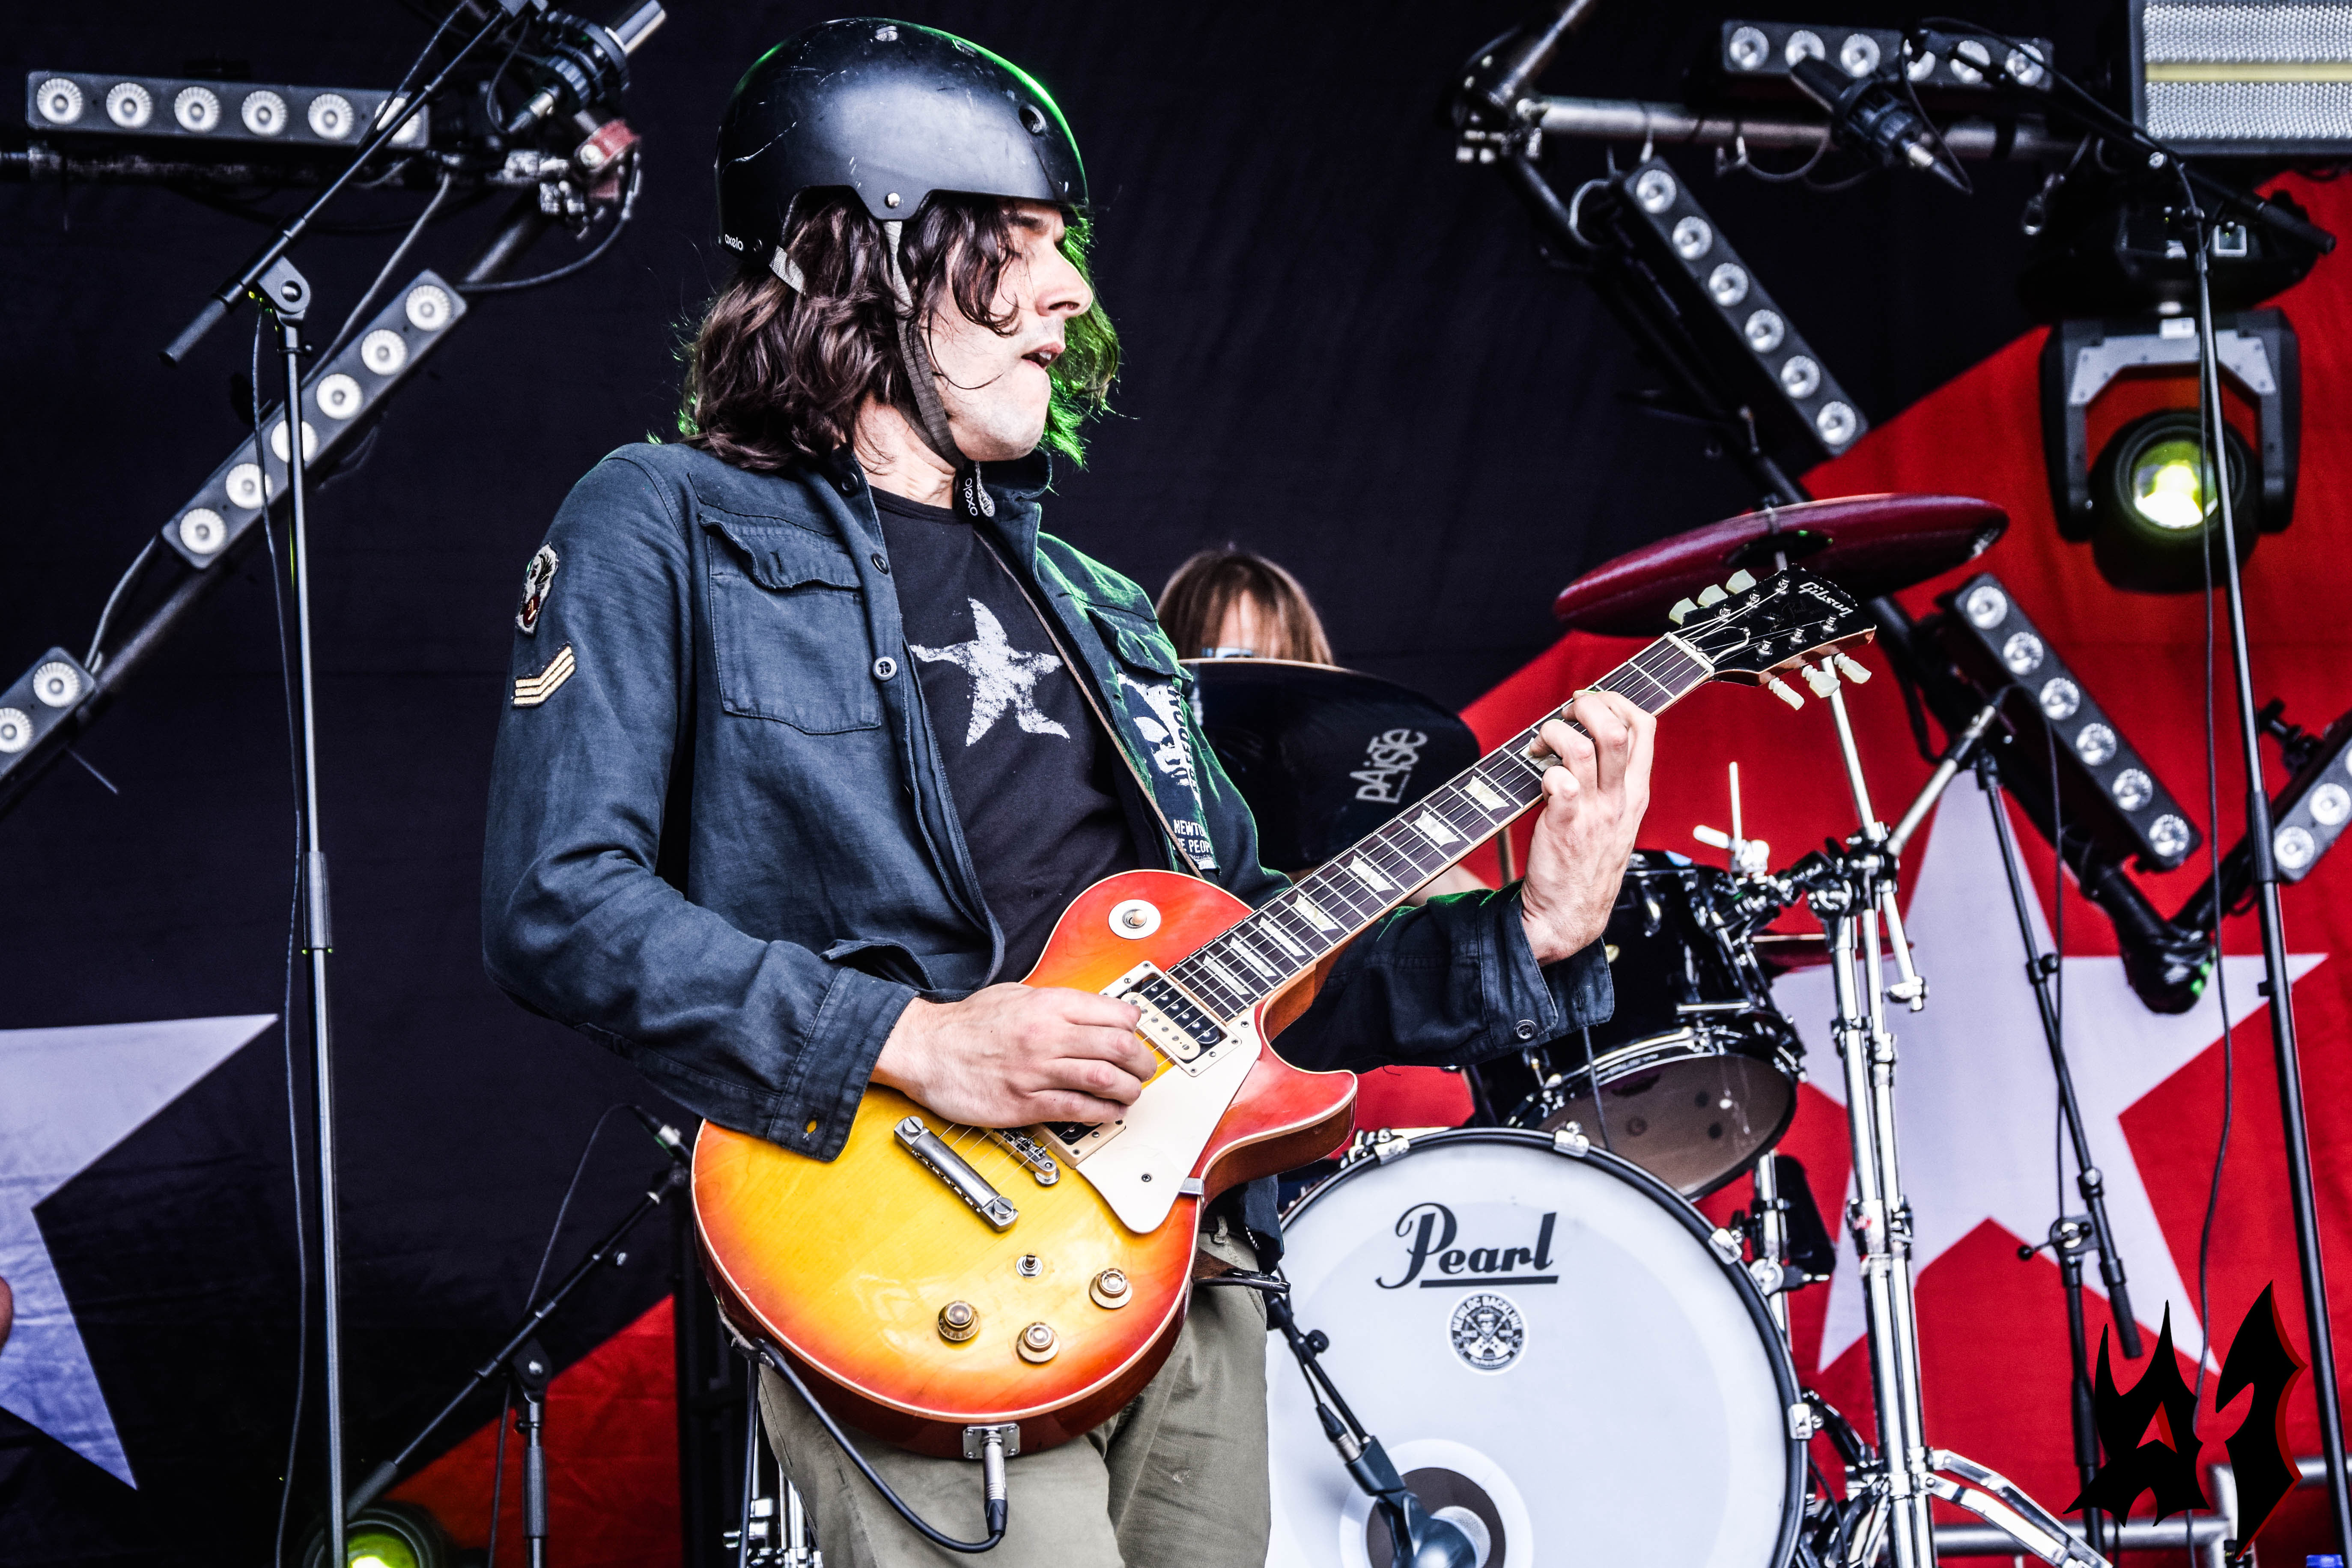 Donwload 2018 – Day 3 - The Last Internationale 21